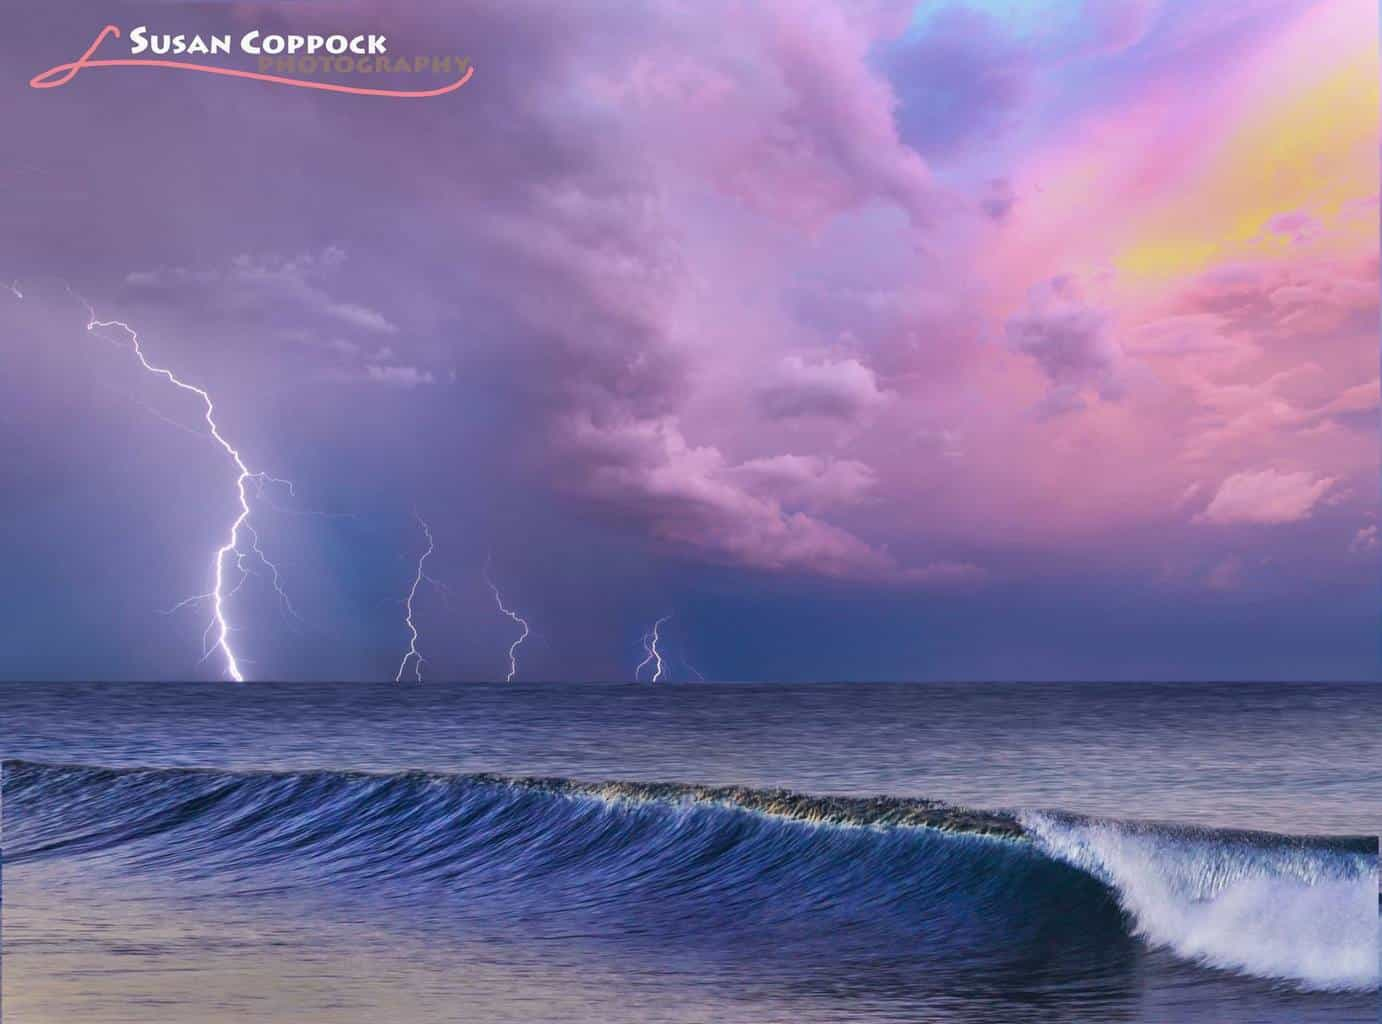 This is a composite I did of three lightning shots stacked (taken in Arizona), and then added to the ocean sunrise shot (taken in Carlsbad, CA). Haha- melding my two favorite states together!